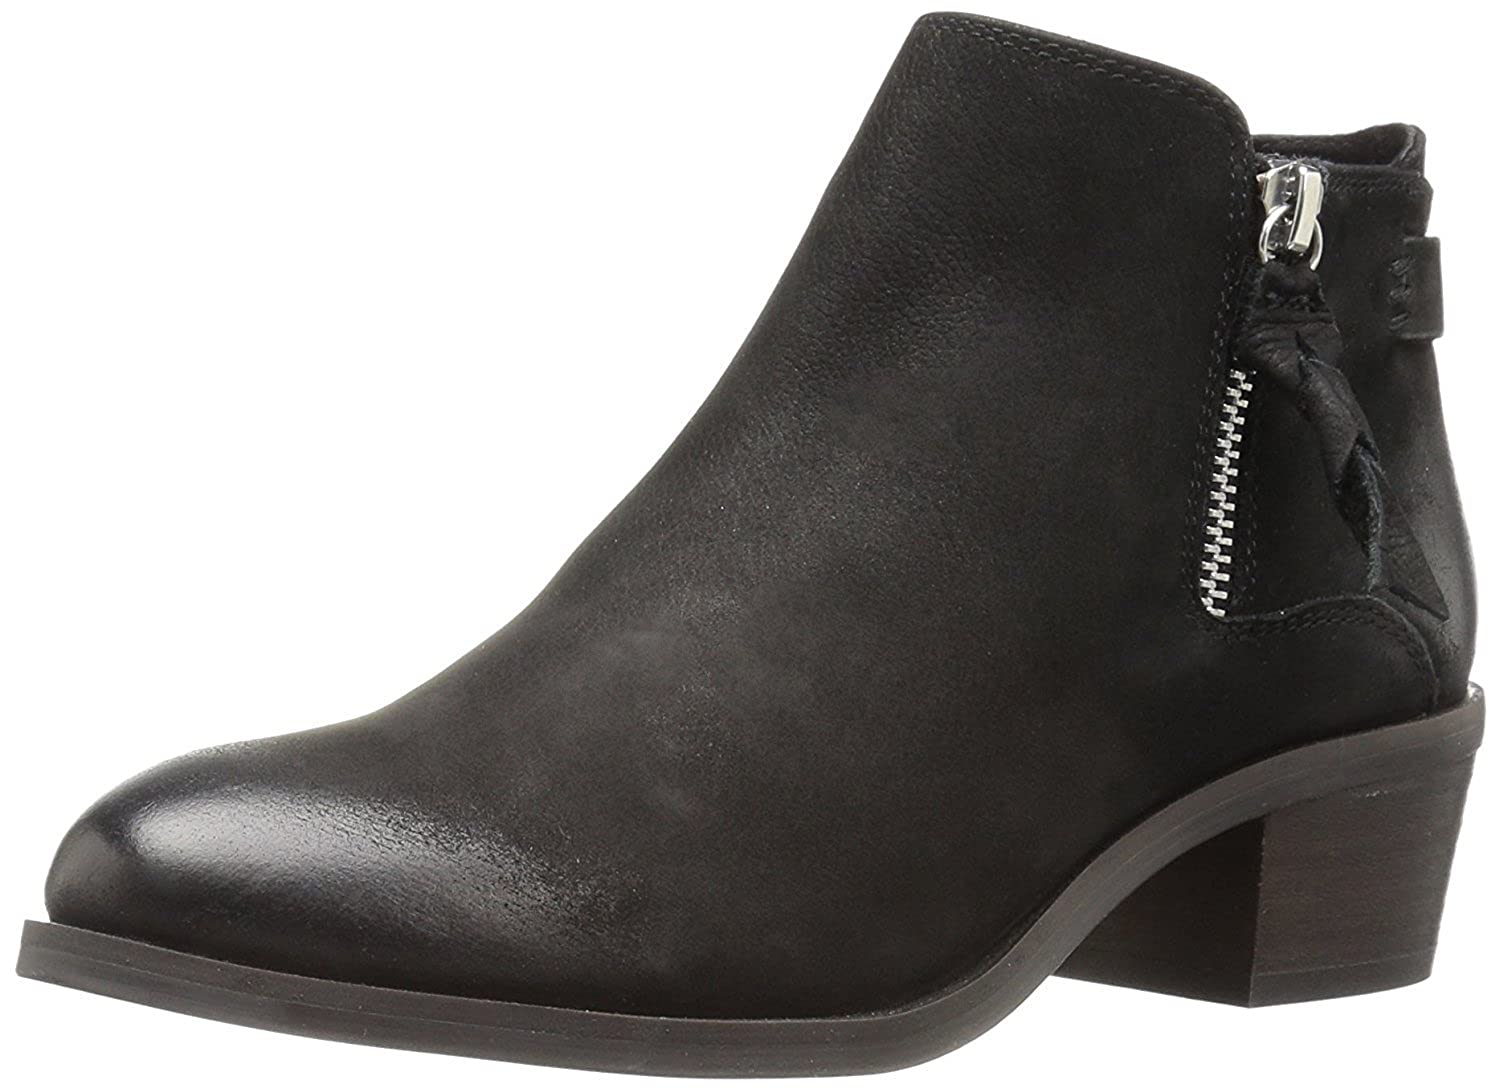 Women's Kyle Ankle Bootie Black Nubuck 5.5 M US